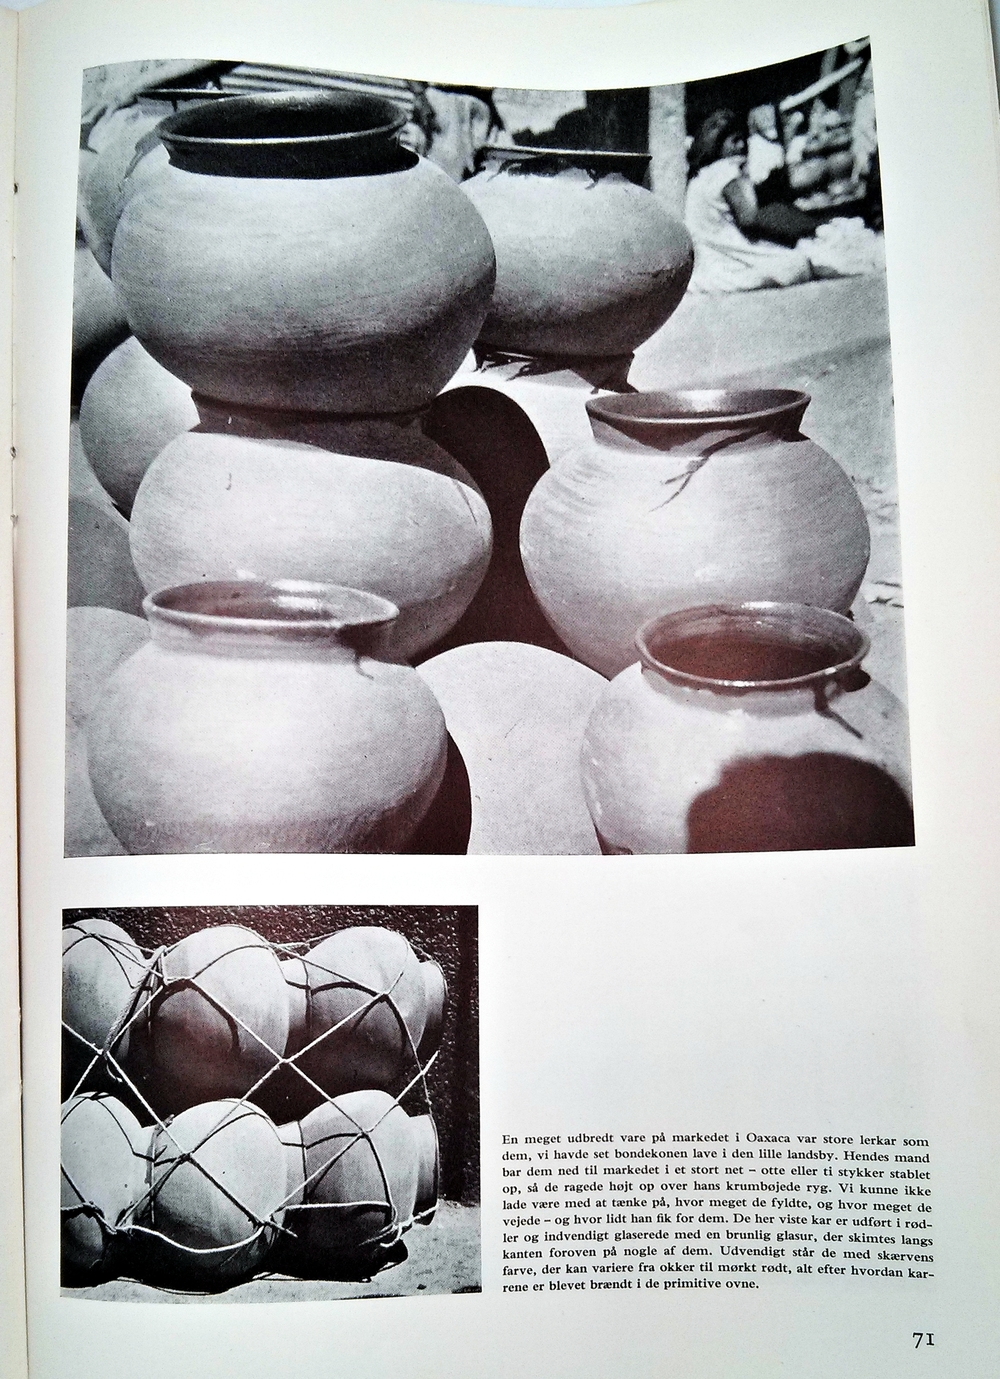 The clay pots shown were also a common site for Nanna and Jorgen. They would often cary multiple pieces on their back to market where they were sold. Often they were made of red clay and glazed brown inside, and the exteriors varied depending on the ovens.